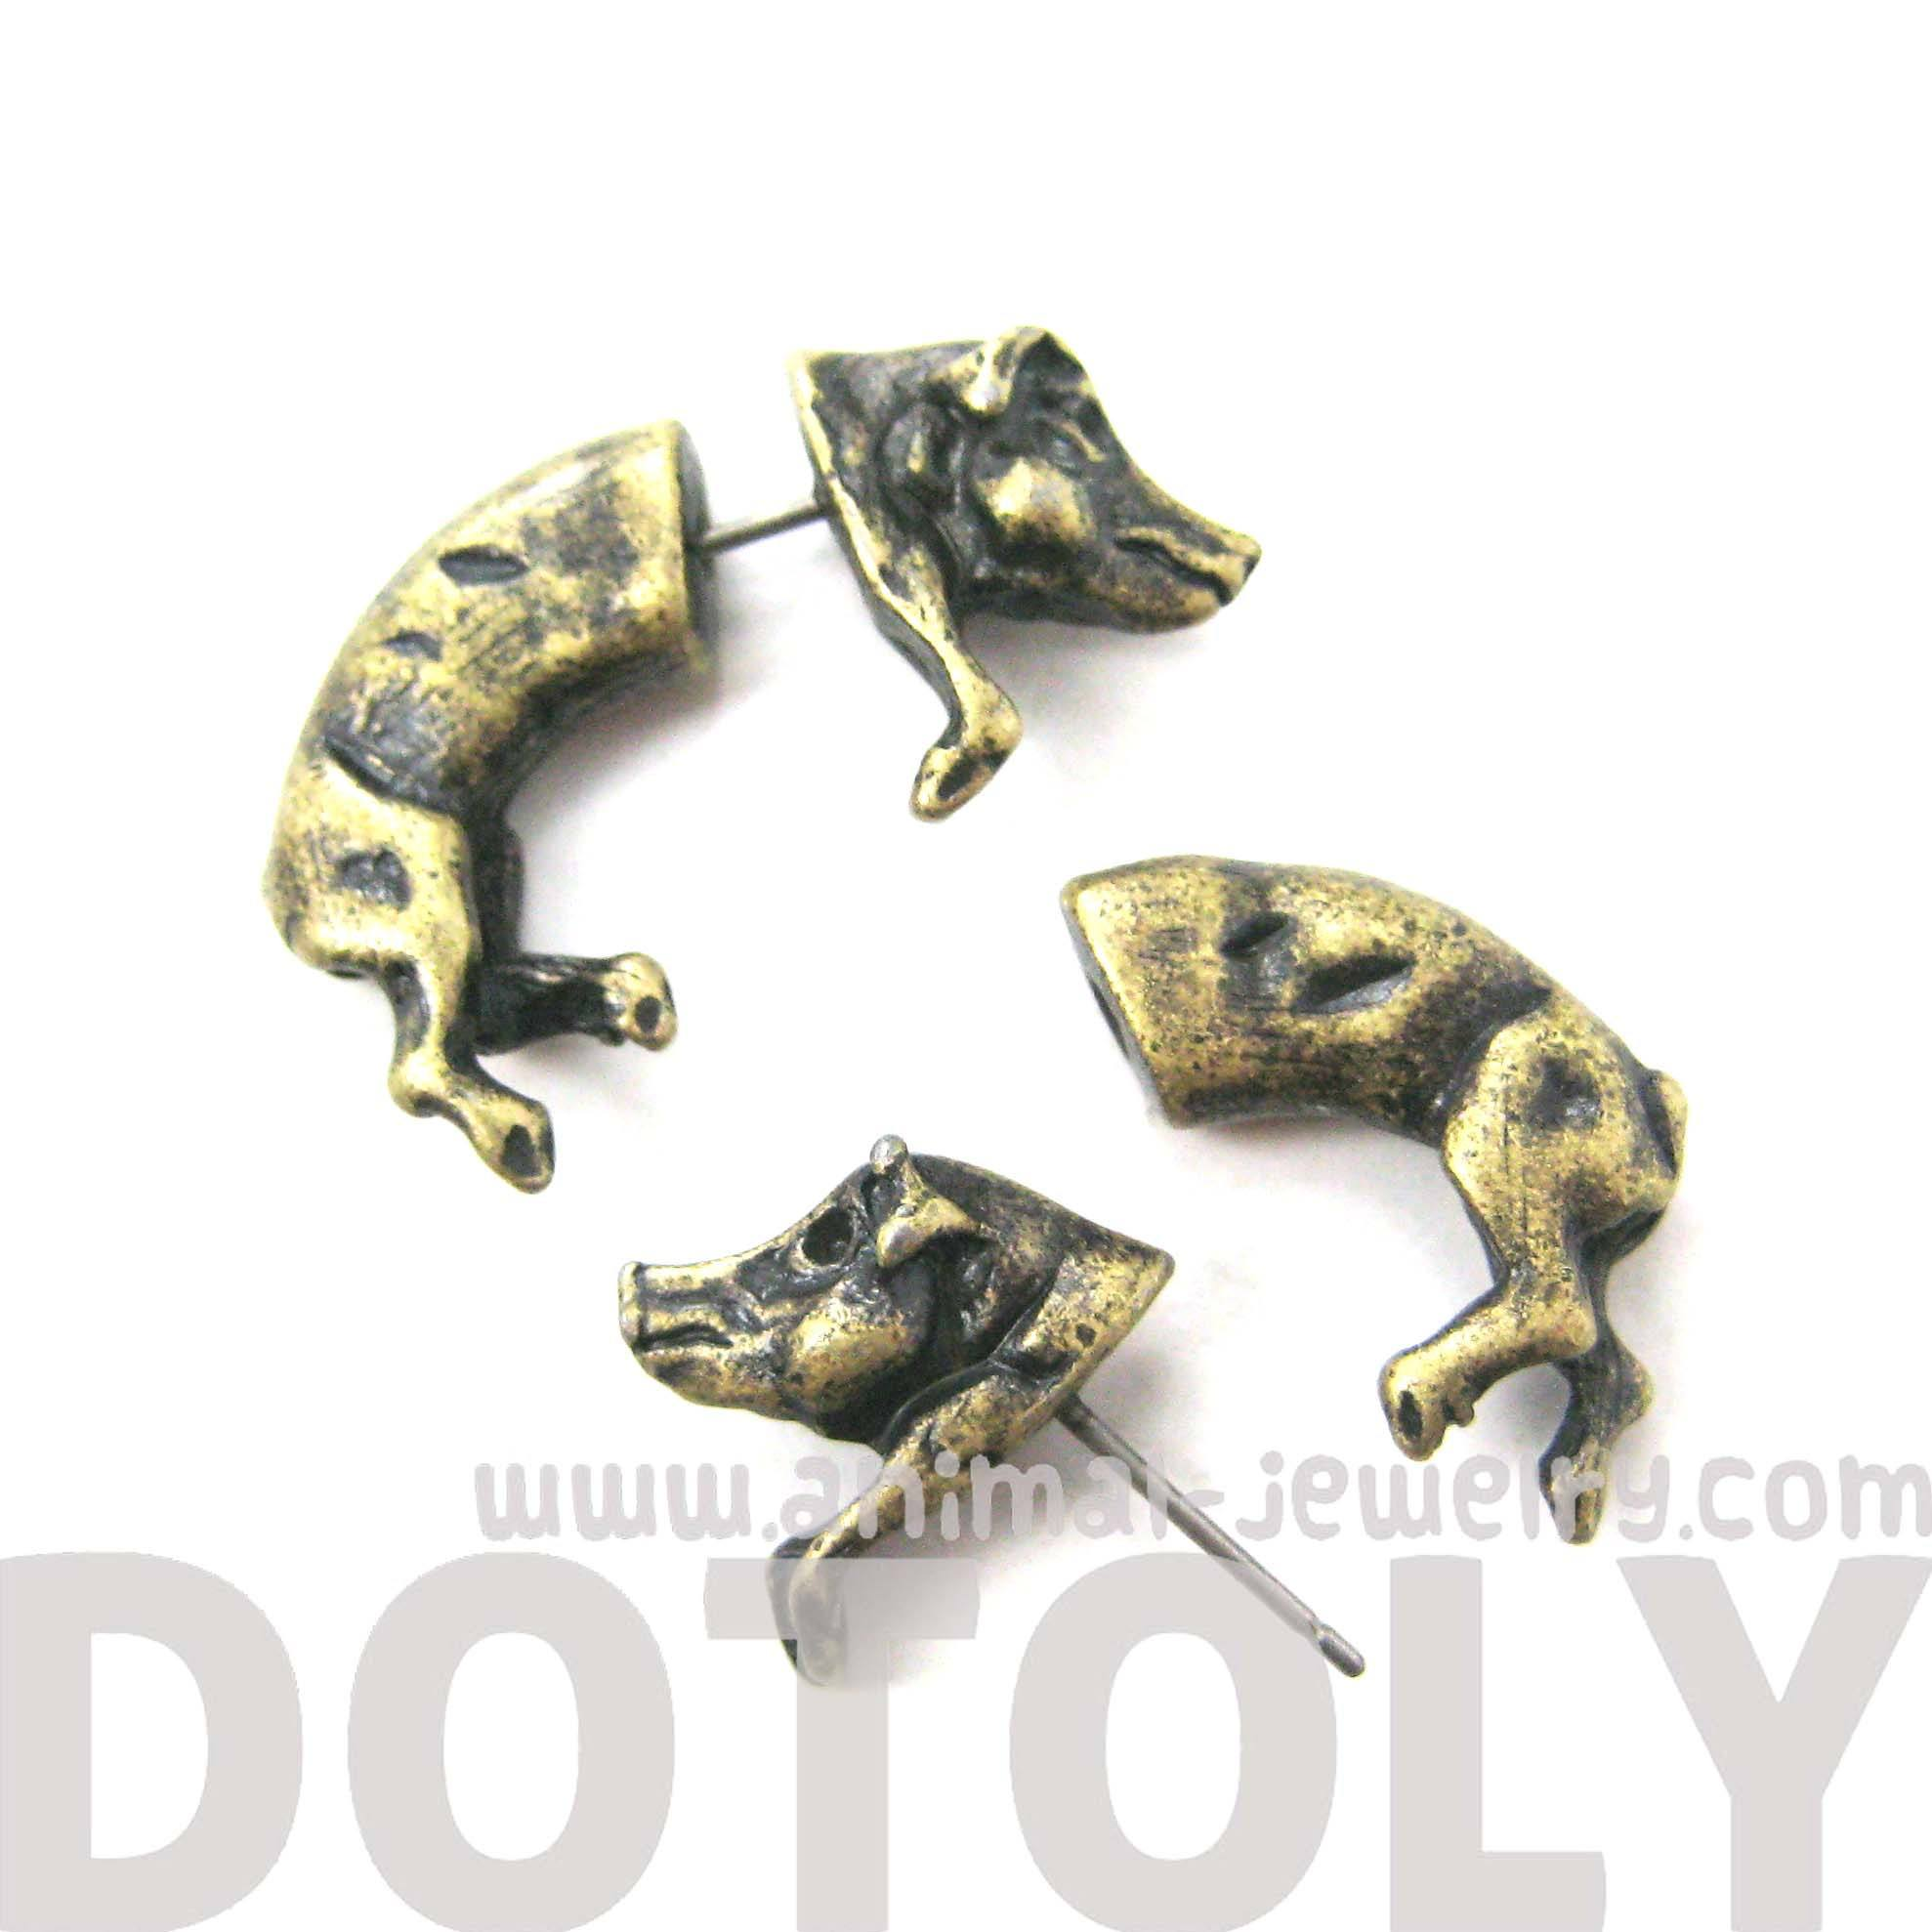 Wild Boar Pig Animal Shaped Plug Fake Gauge Earrings in Brass